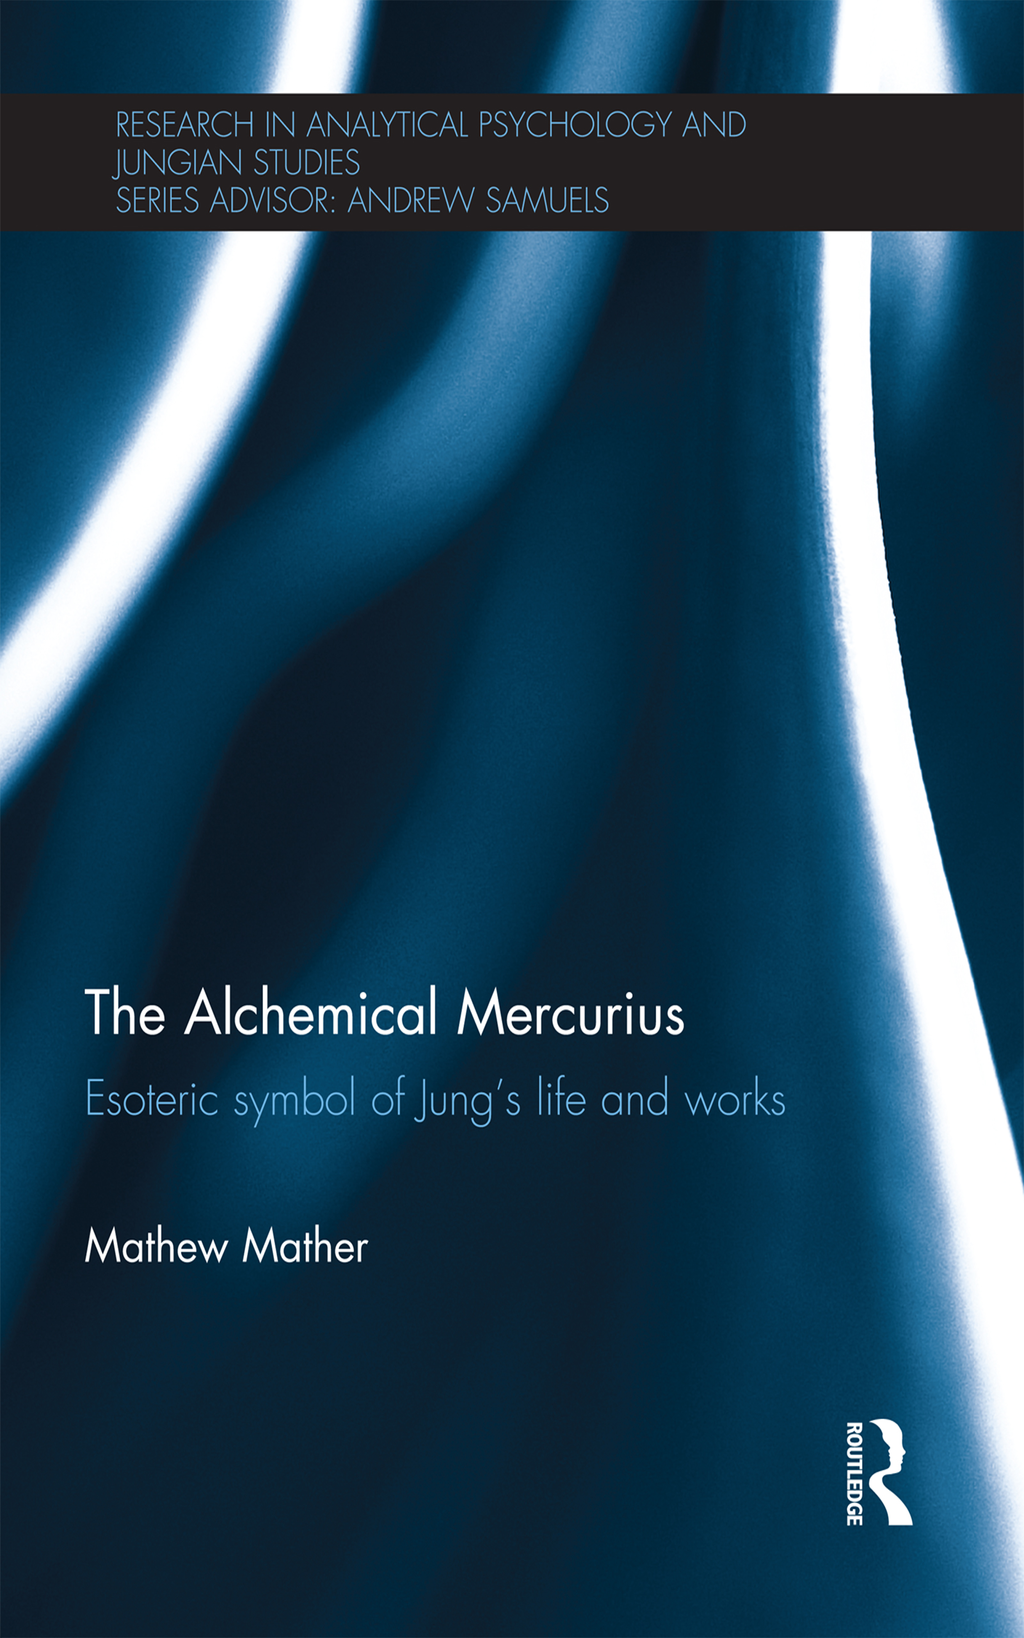 The Alchemical Mercurius Esoteric symbol of Jung?s life and works